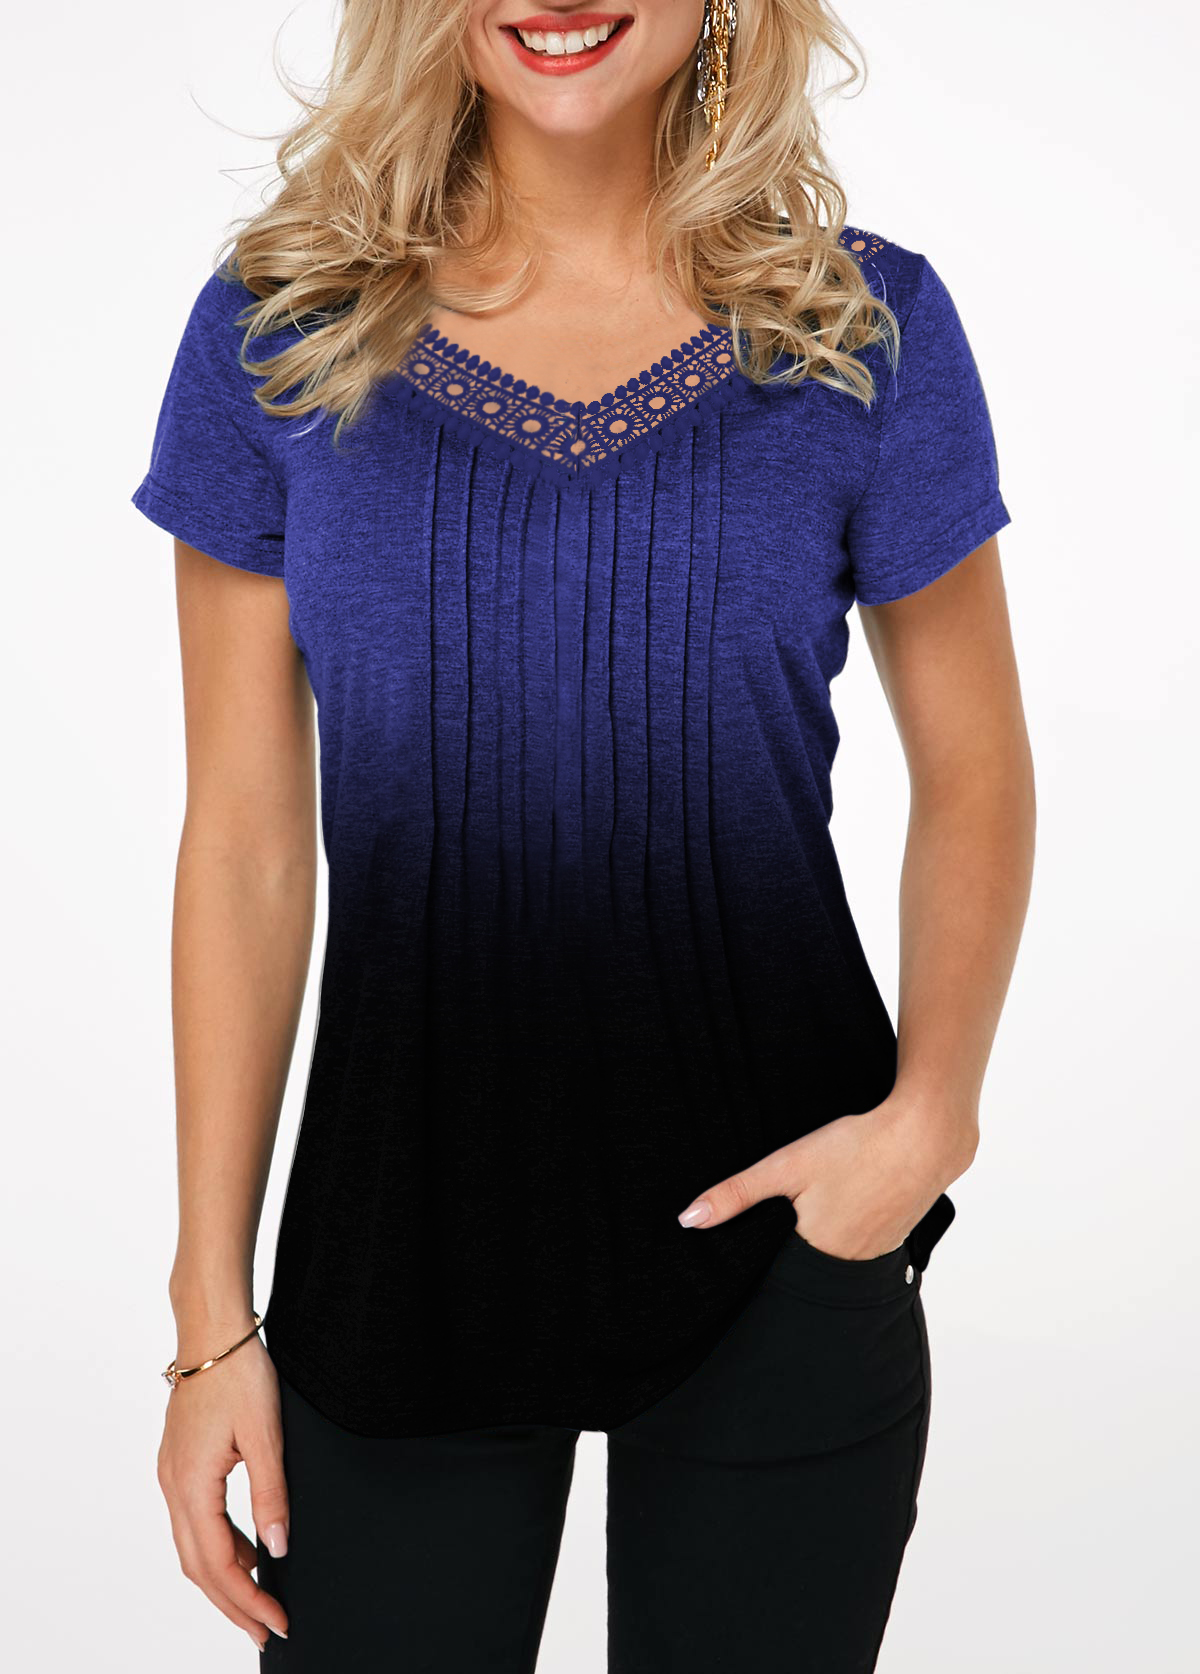 Lace Patchwork Short Sleeve Gradient Crinkle Chest T Shirt